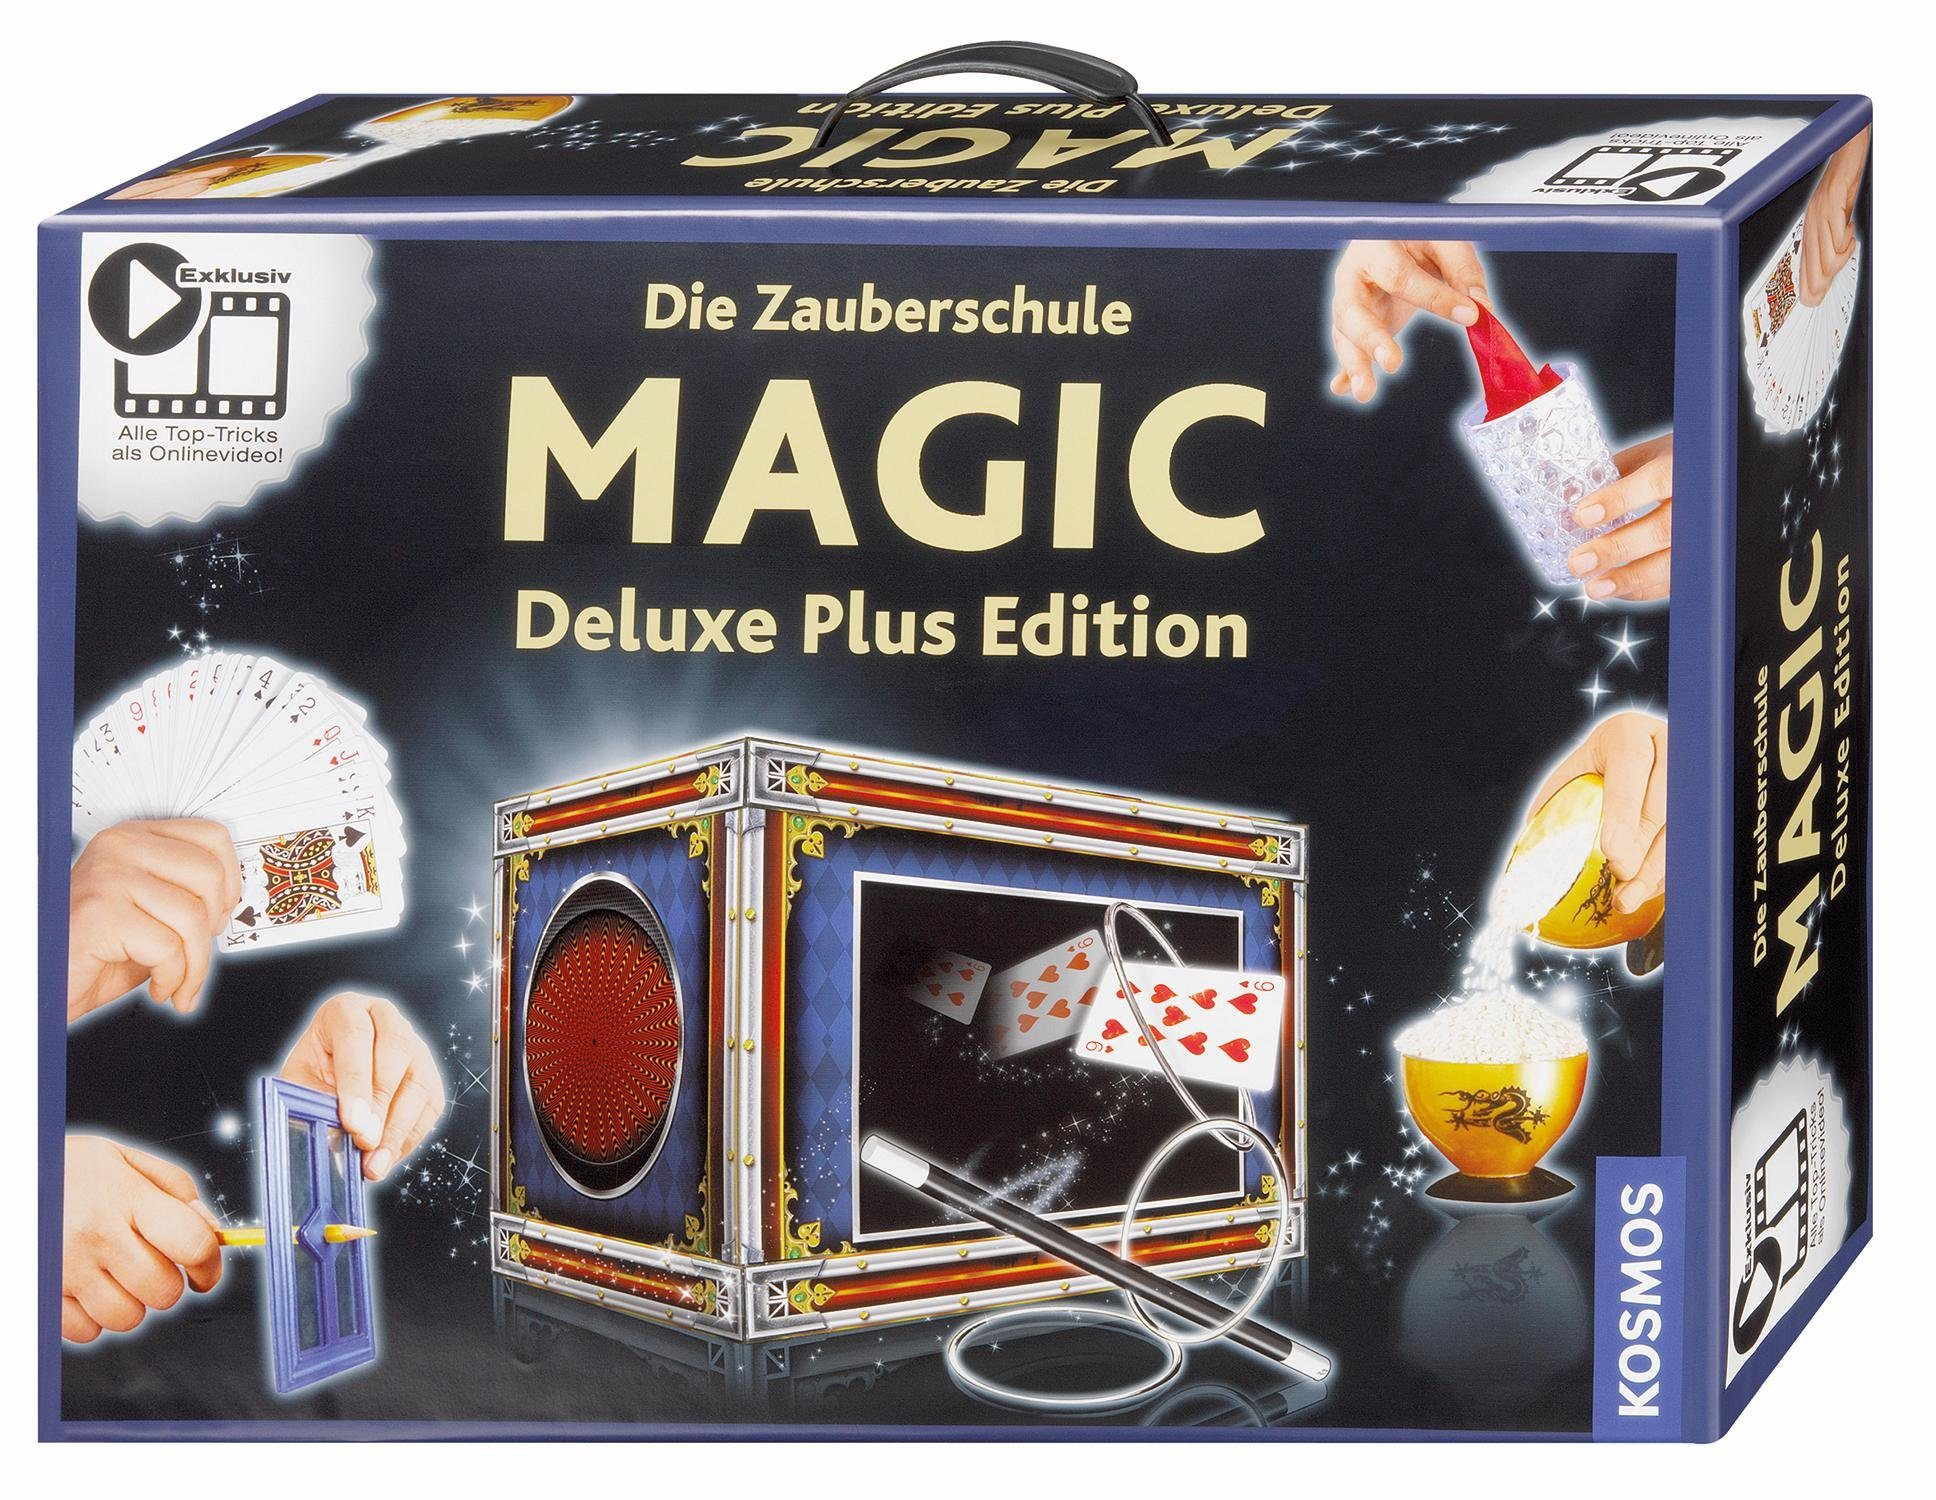 Kosmos Zauberkasten, »Die Zauberschule Magic Deluxe Plus Edition«